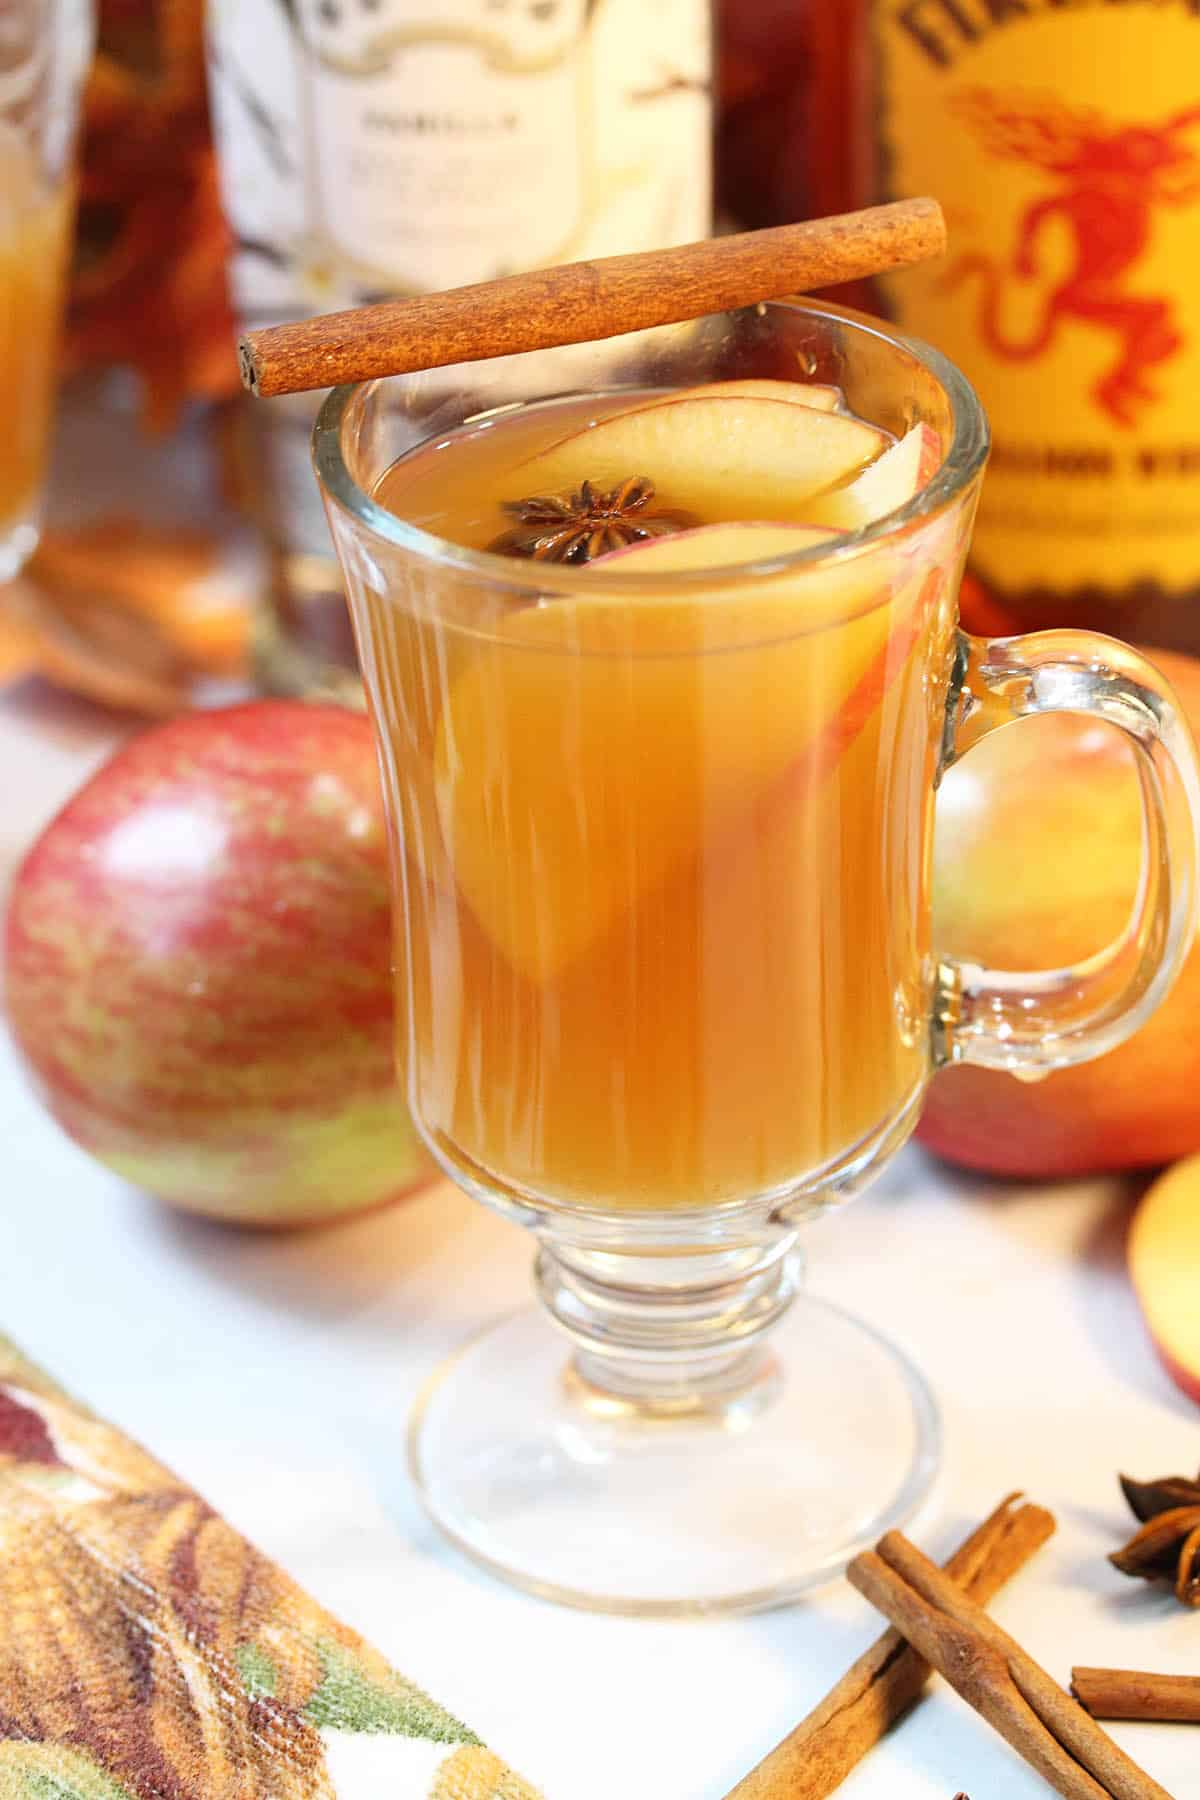 Mug of warm cider with apples and liquor in background.